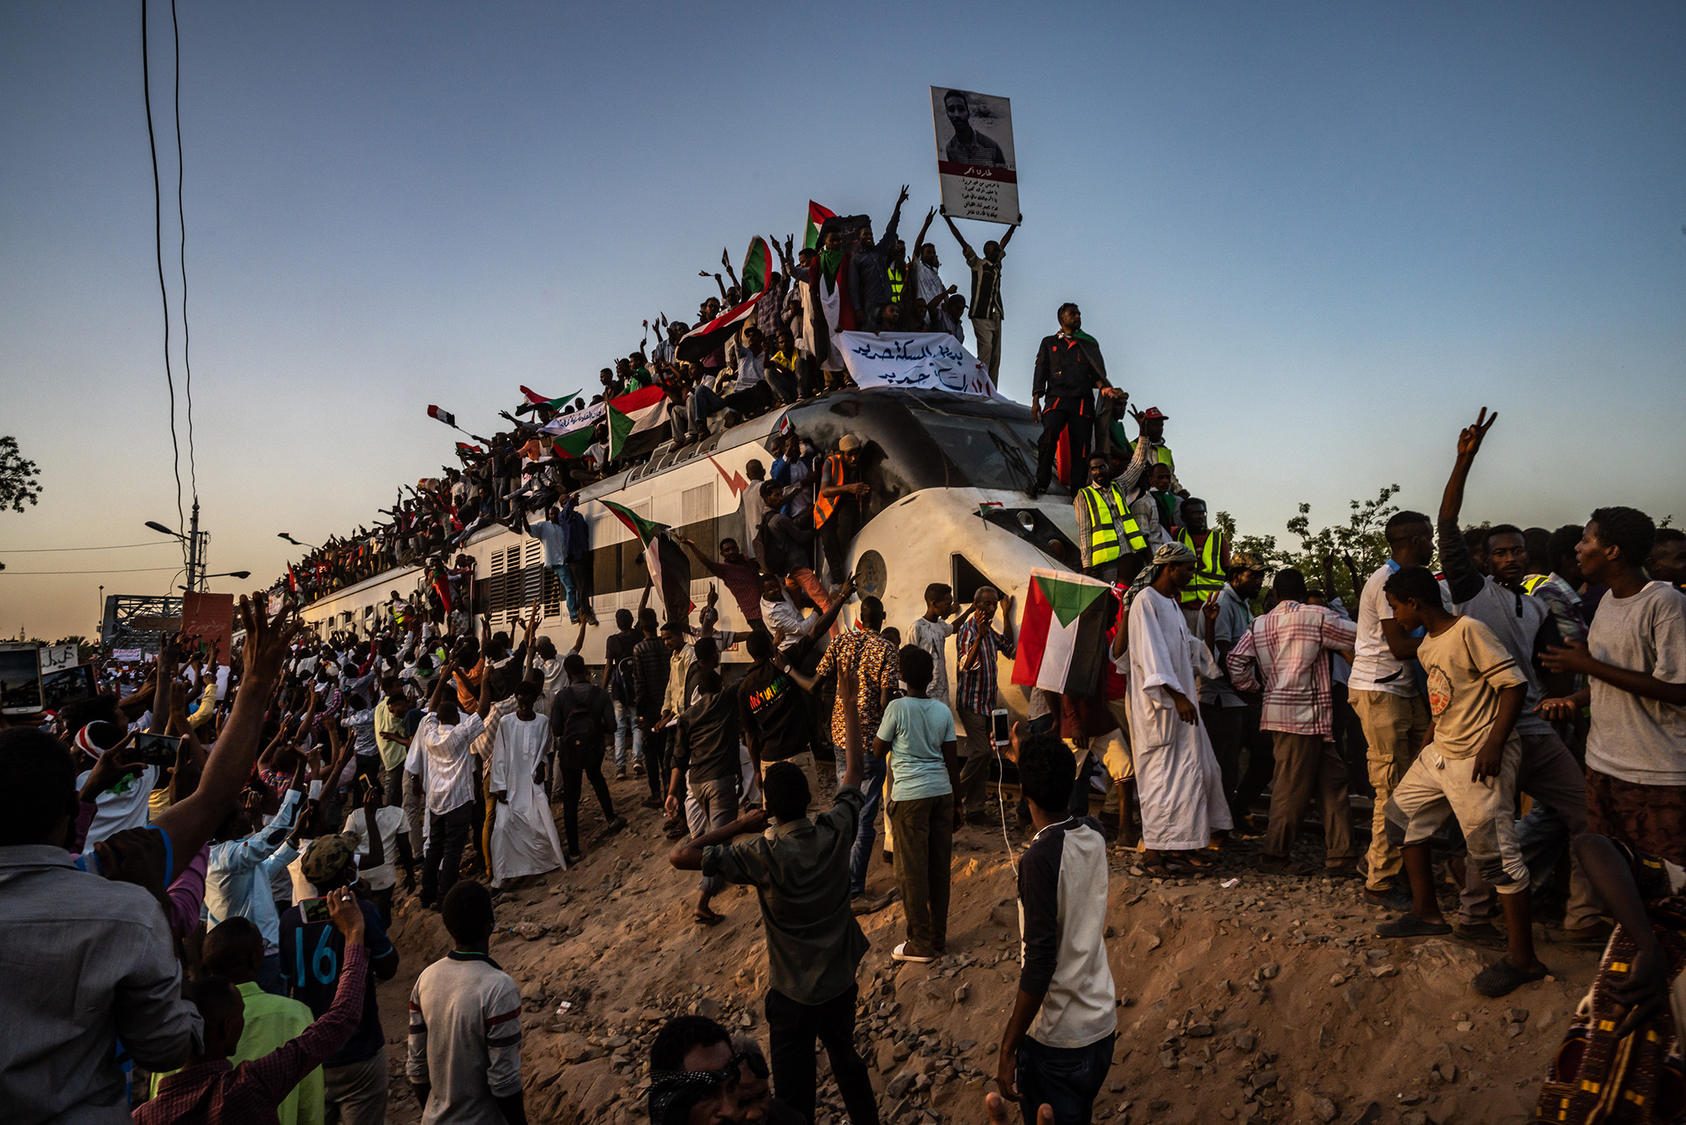 A train carrying demonstrators from al-Atbara arrives in Khartoum, Sudan, April 23, 2019. (Bryan Denton/The New York Times)